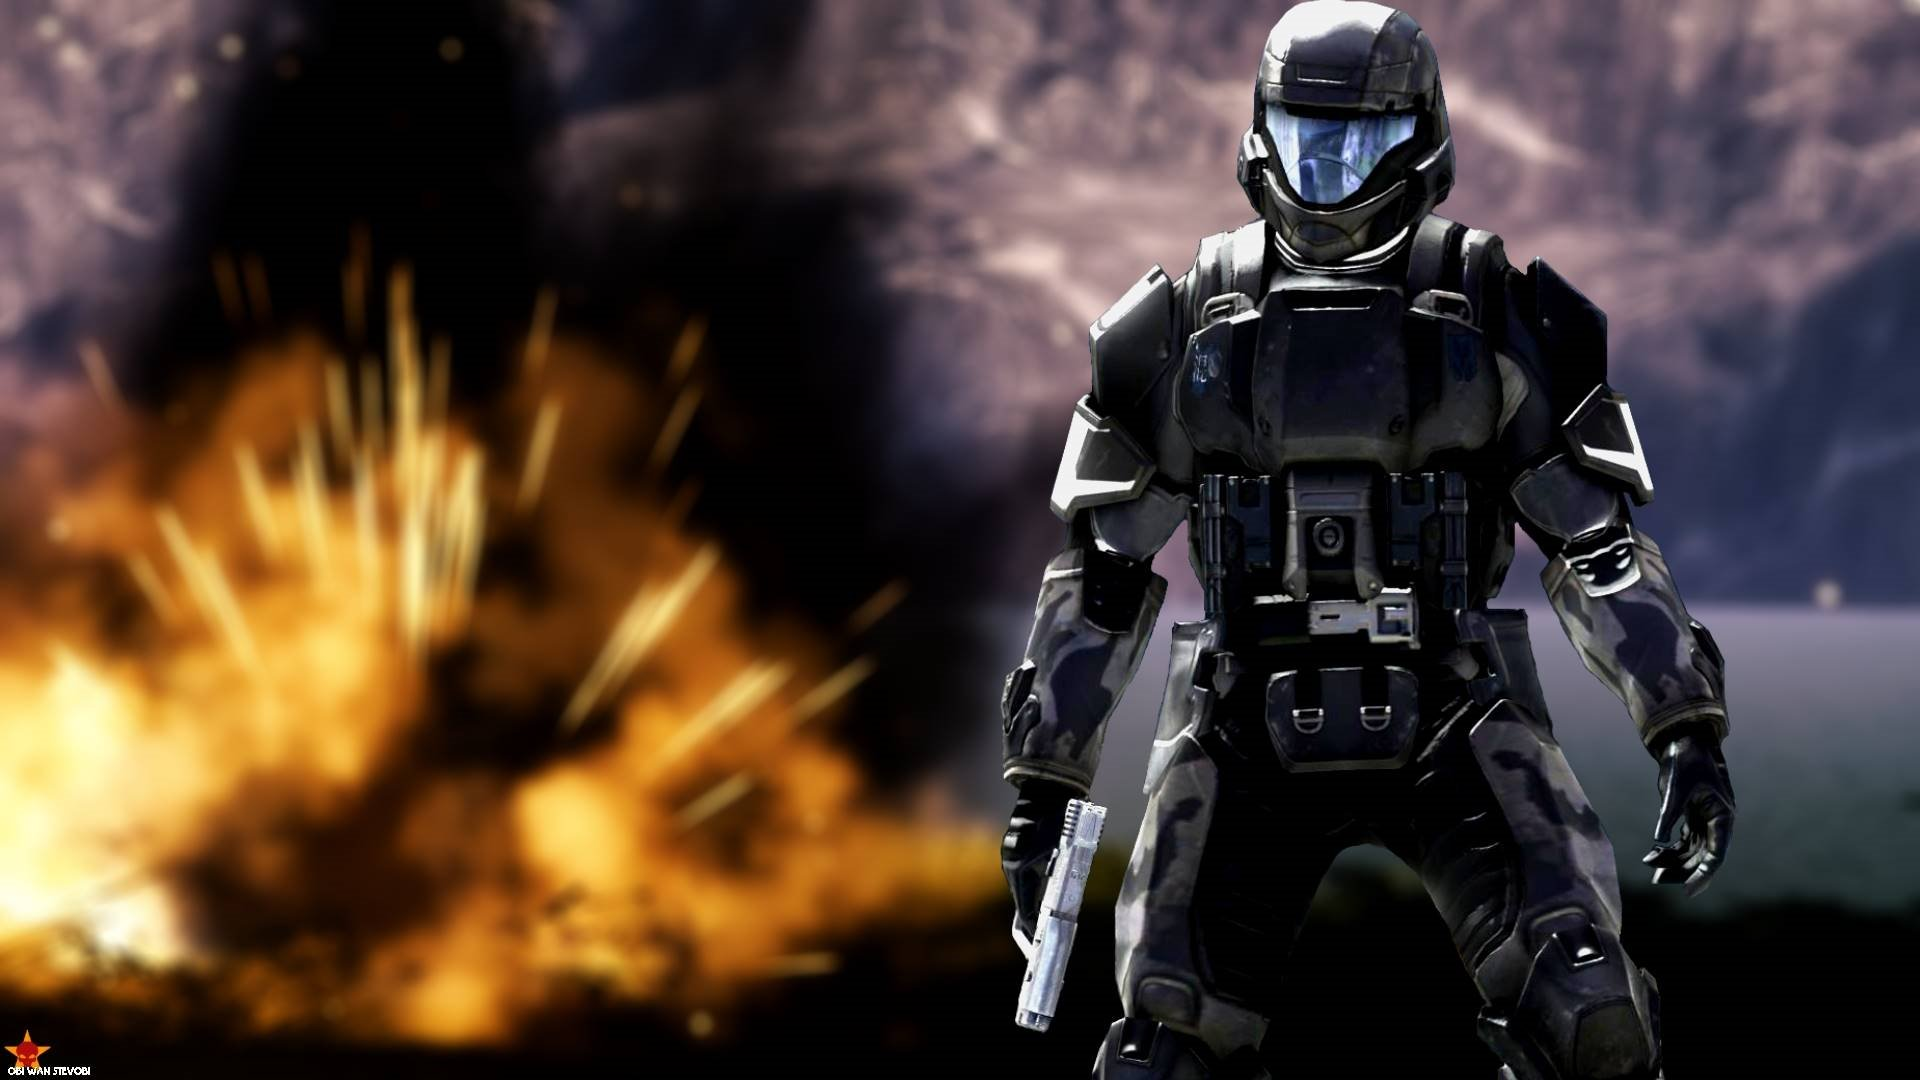 Halo Hd Wallpaper Background Image 1920x1080 Id75930